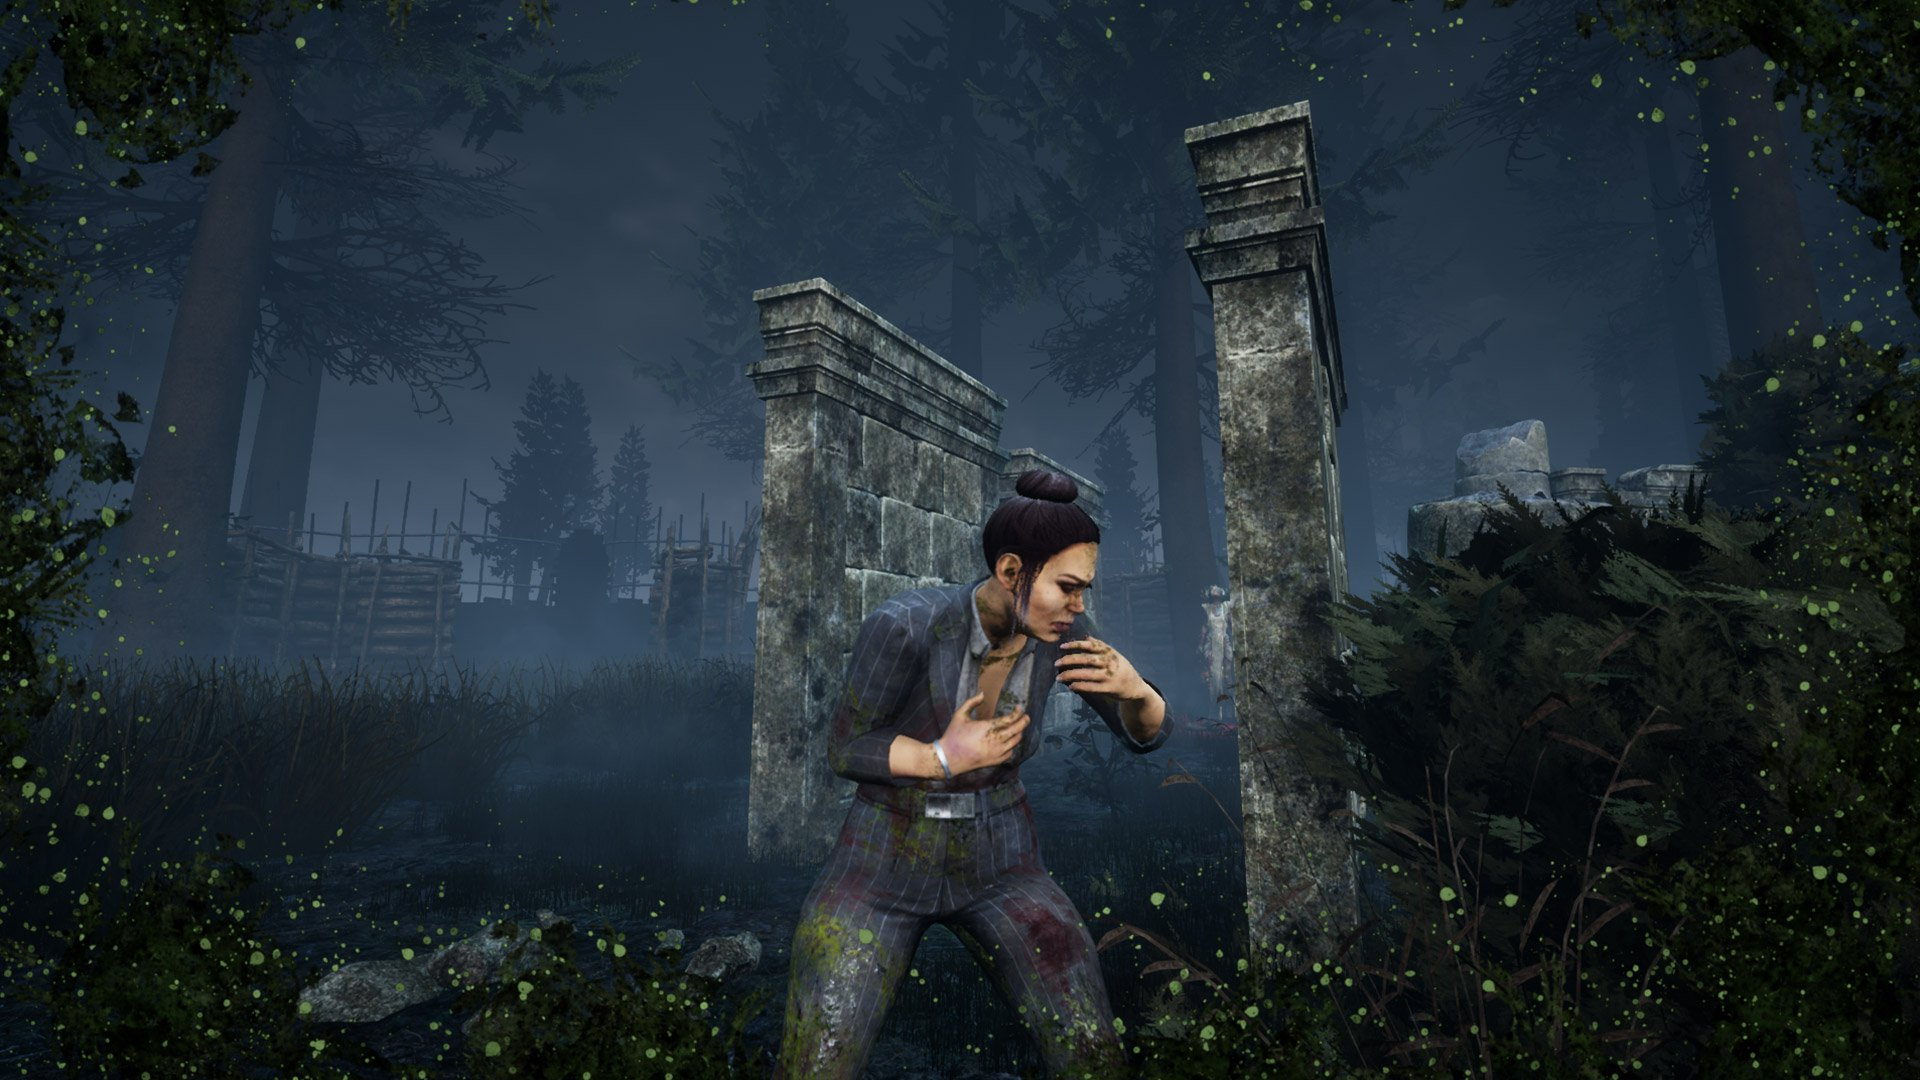 Dead by Daylight Demise of the Faithful chapter 6